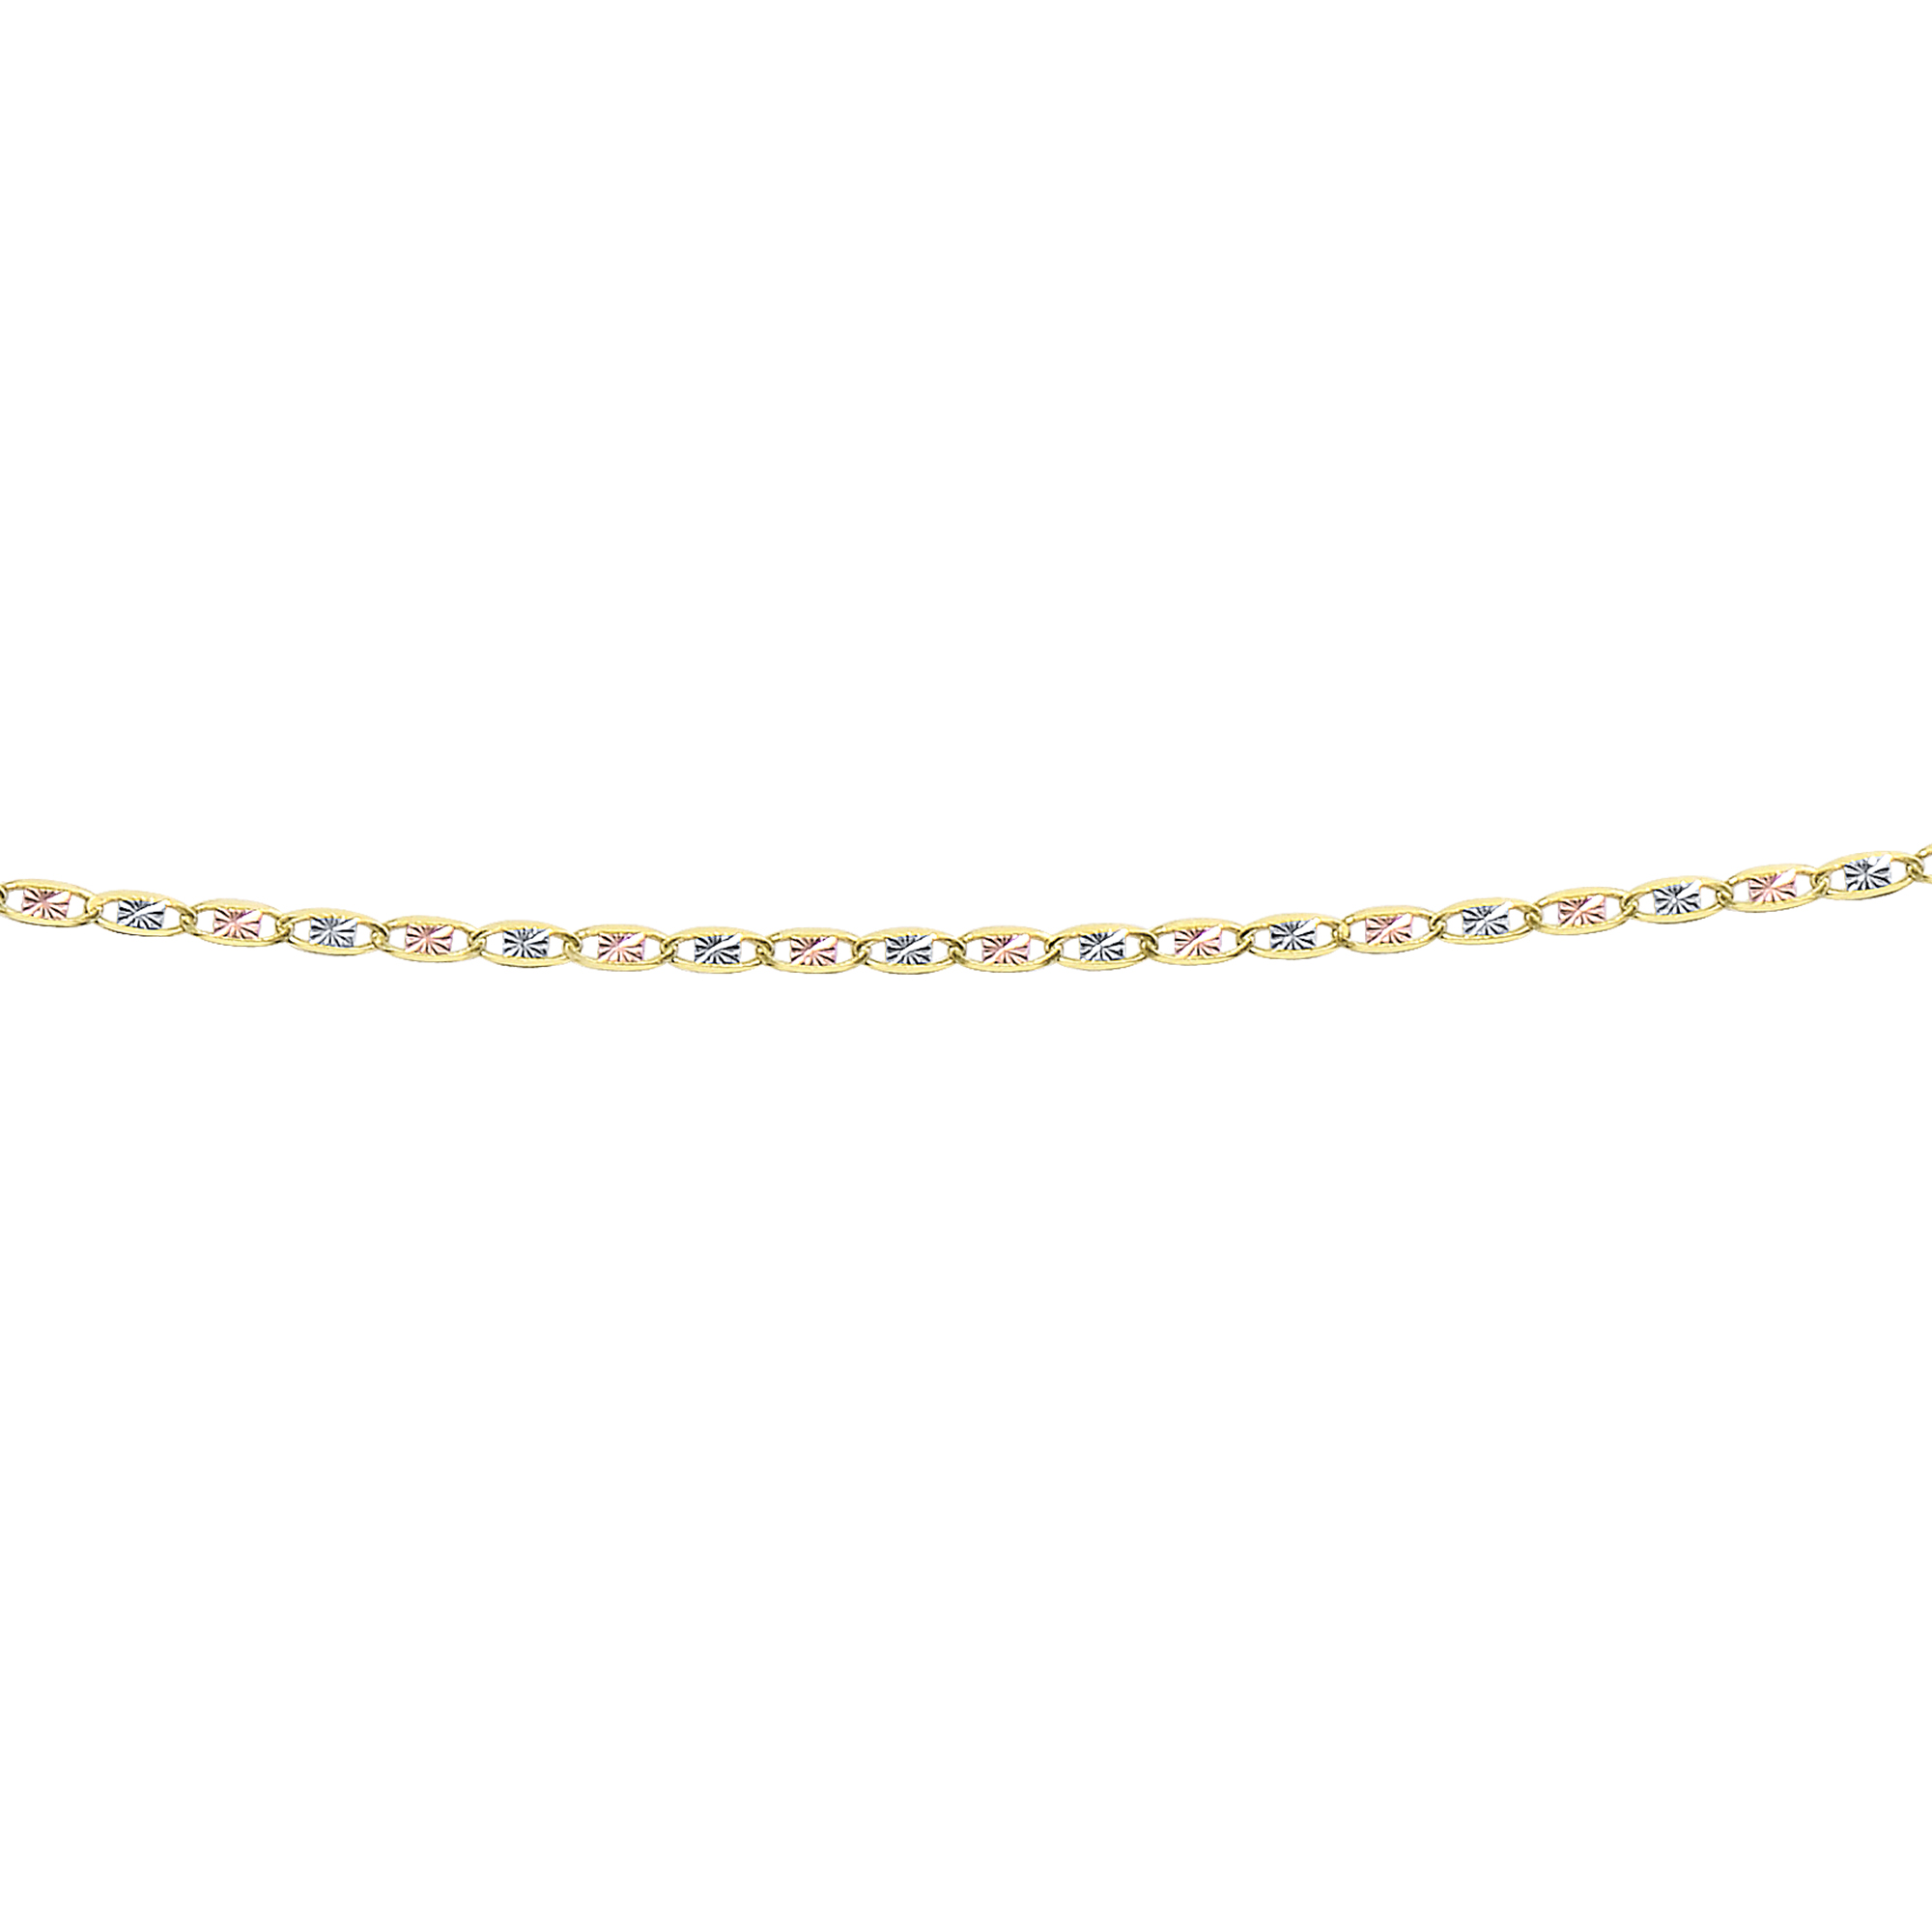 LUXURMAN Solid 14k Gold Valentino Chain For Women 2mm Wide